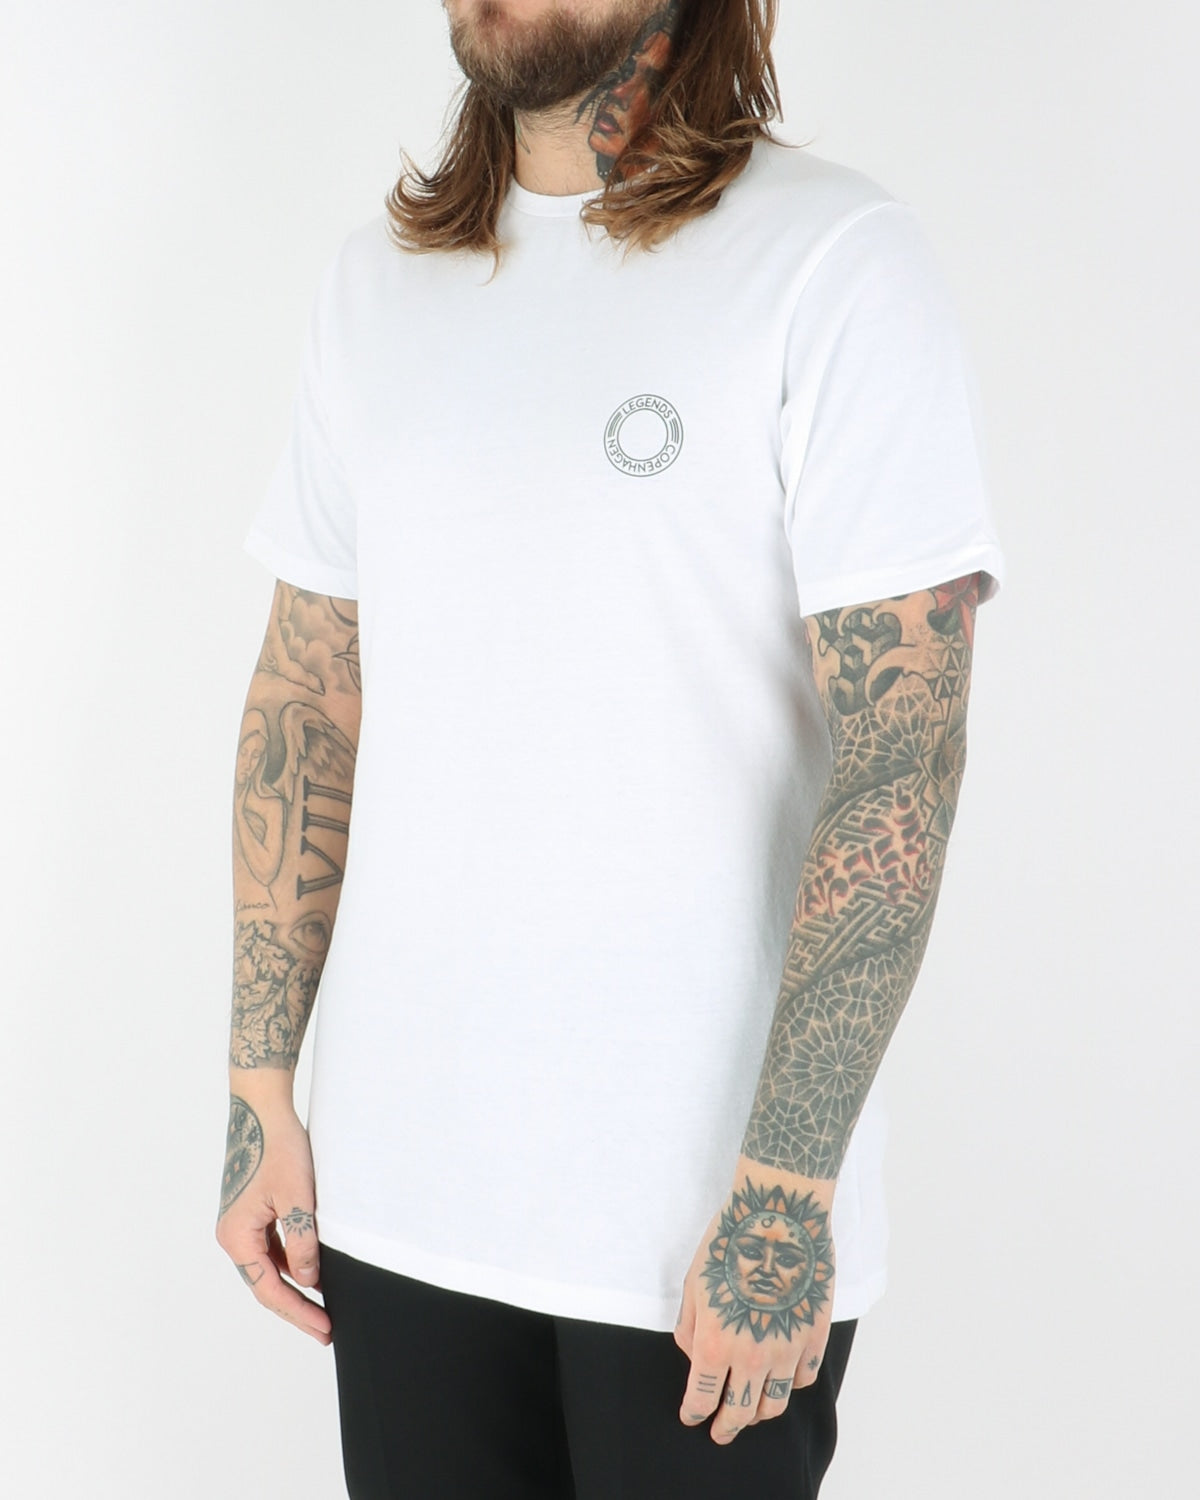 legends_chest coin t-shirt_white_view_2_3